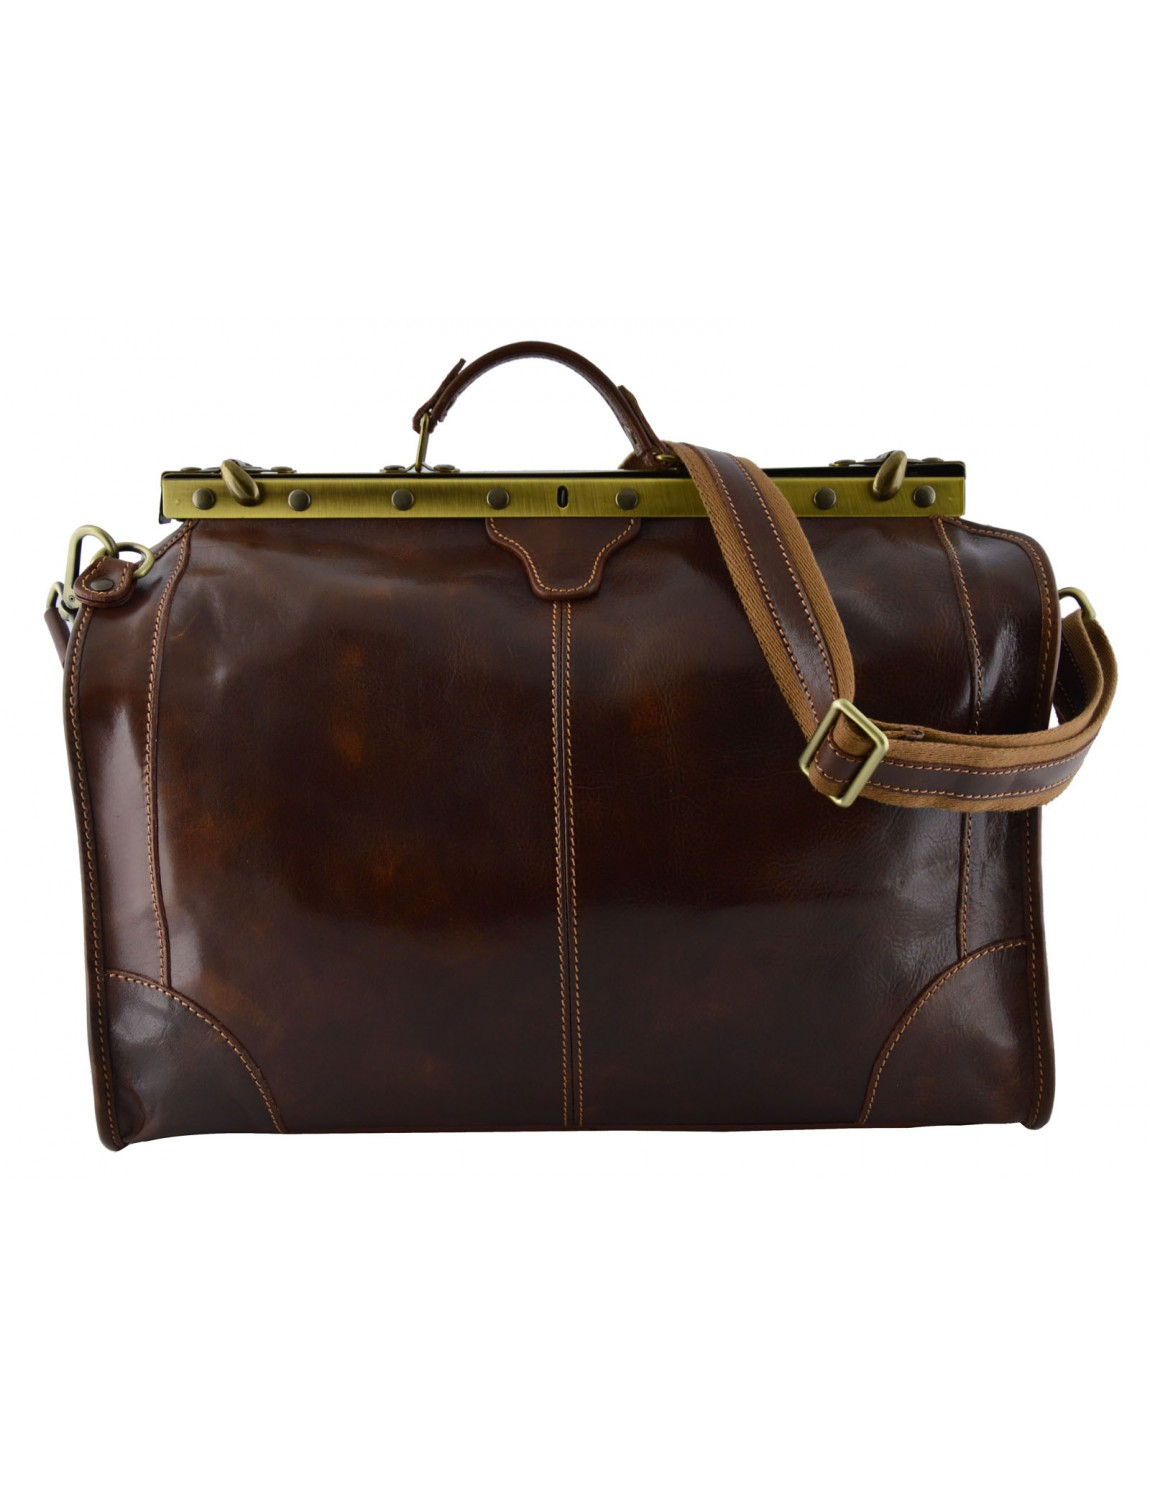 Genuine Leather Travel Bag - Eny